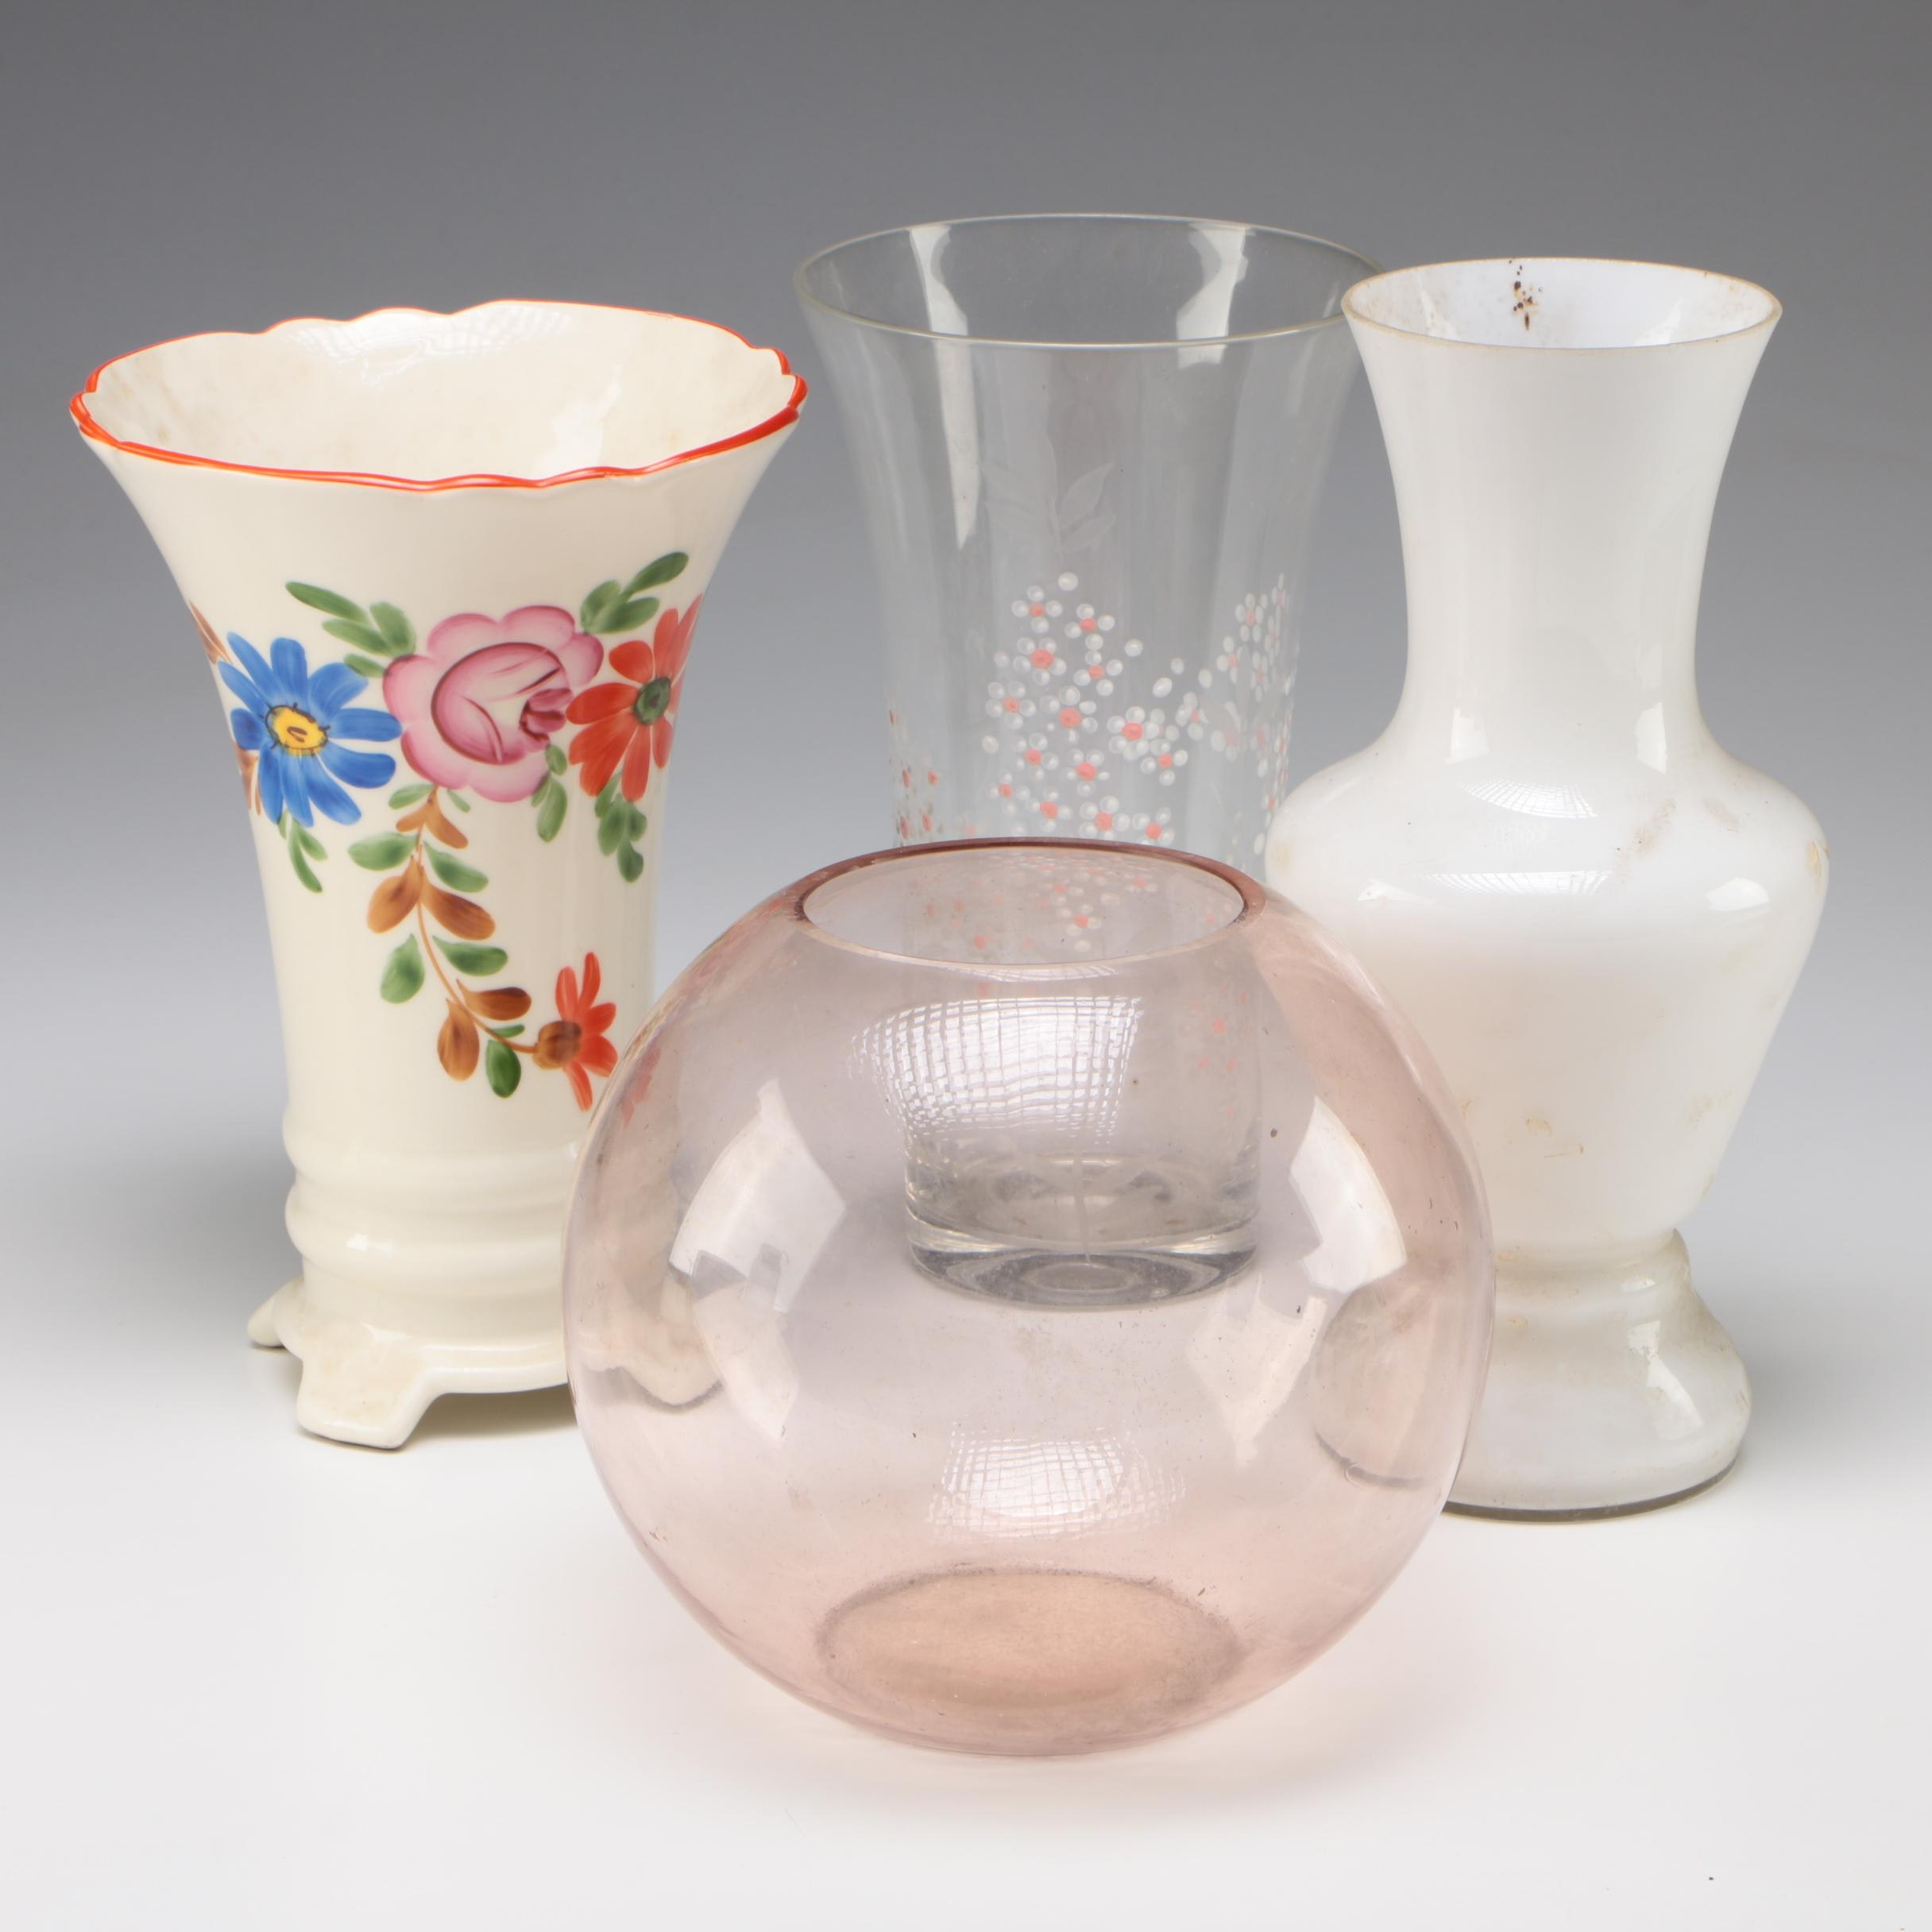 BIHL Czechoslovakia Hand-Painted Ceramic Vase with other Glass Vases,